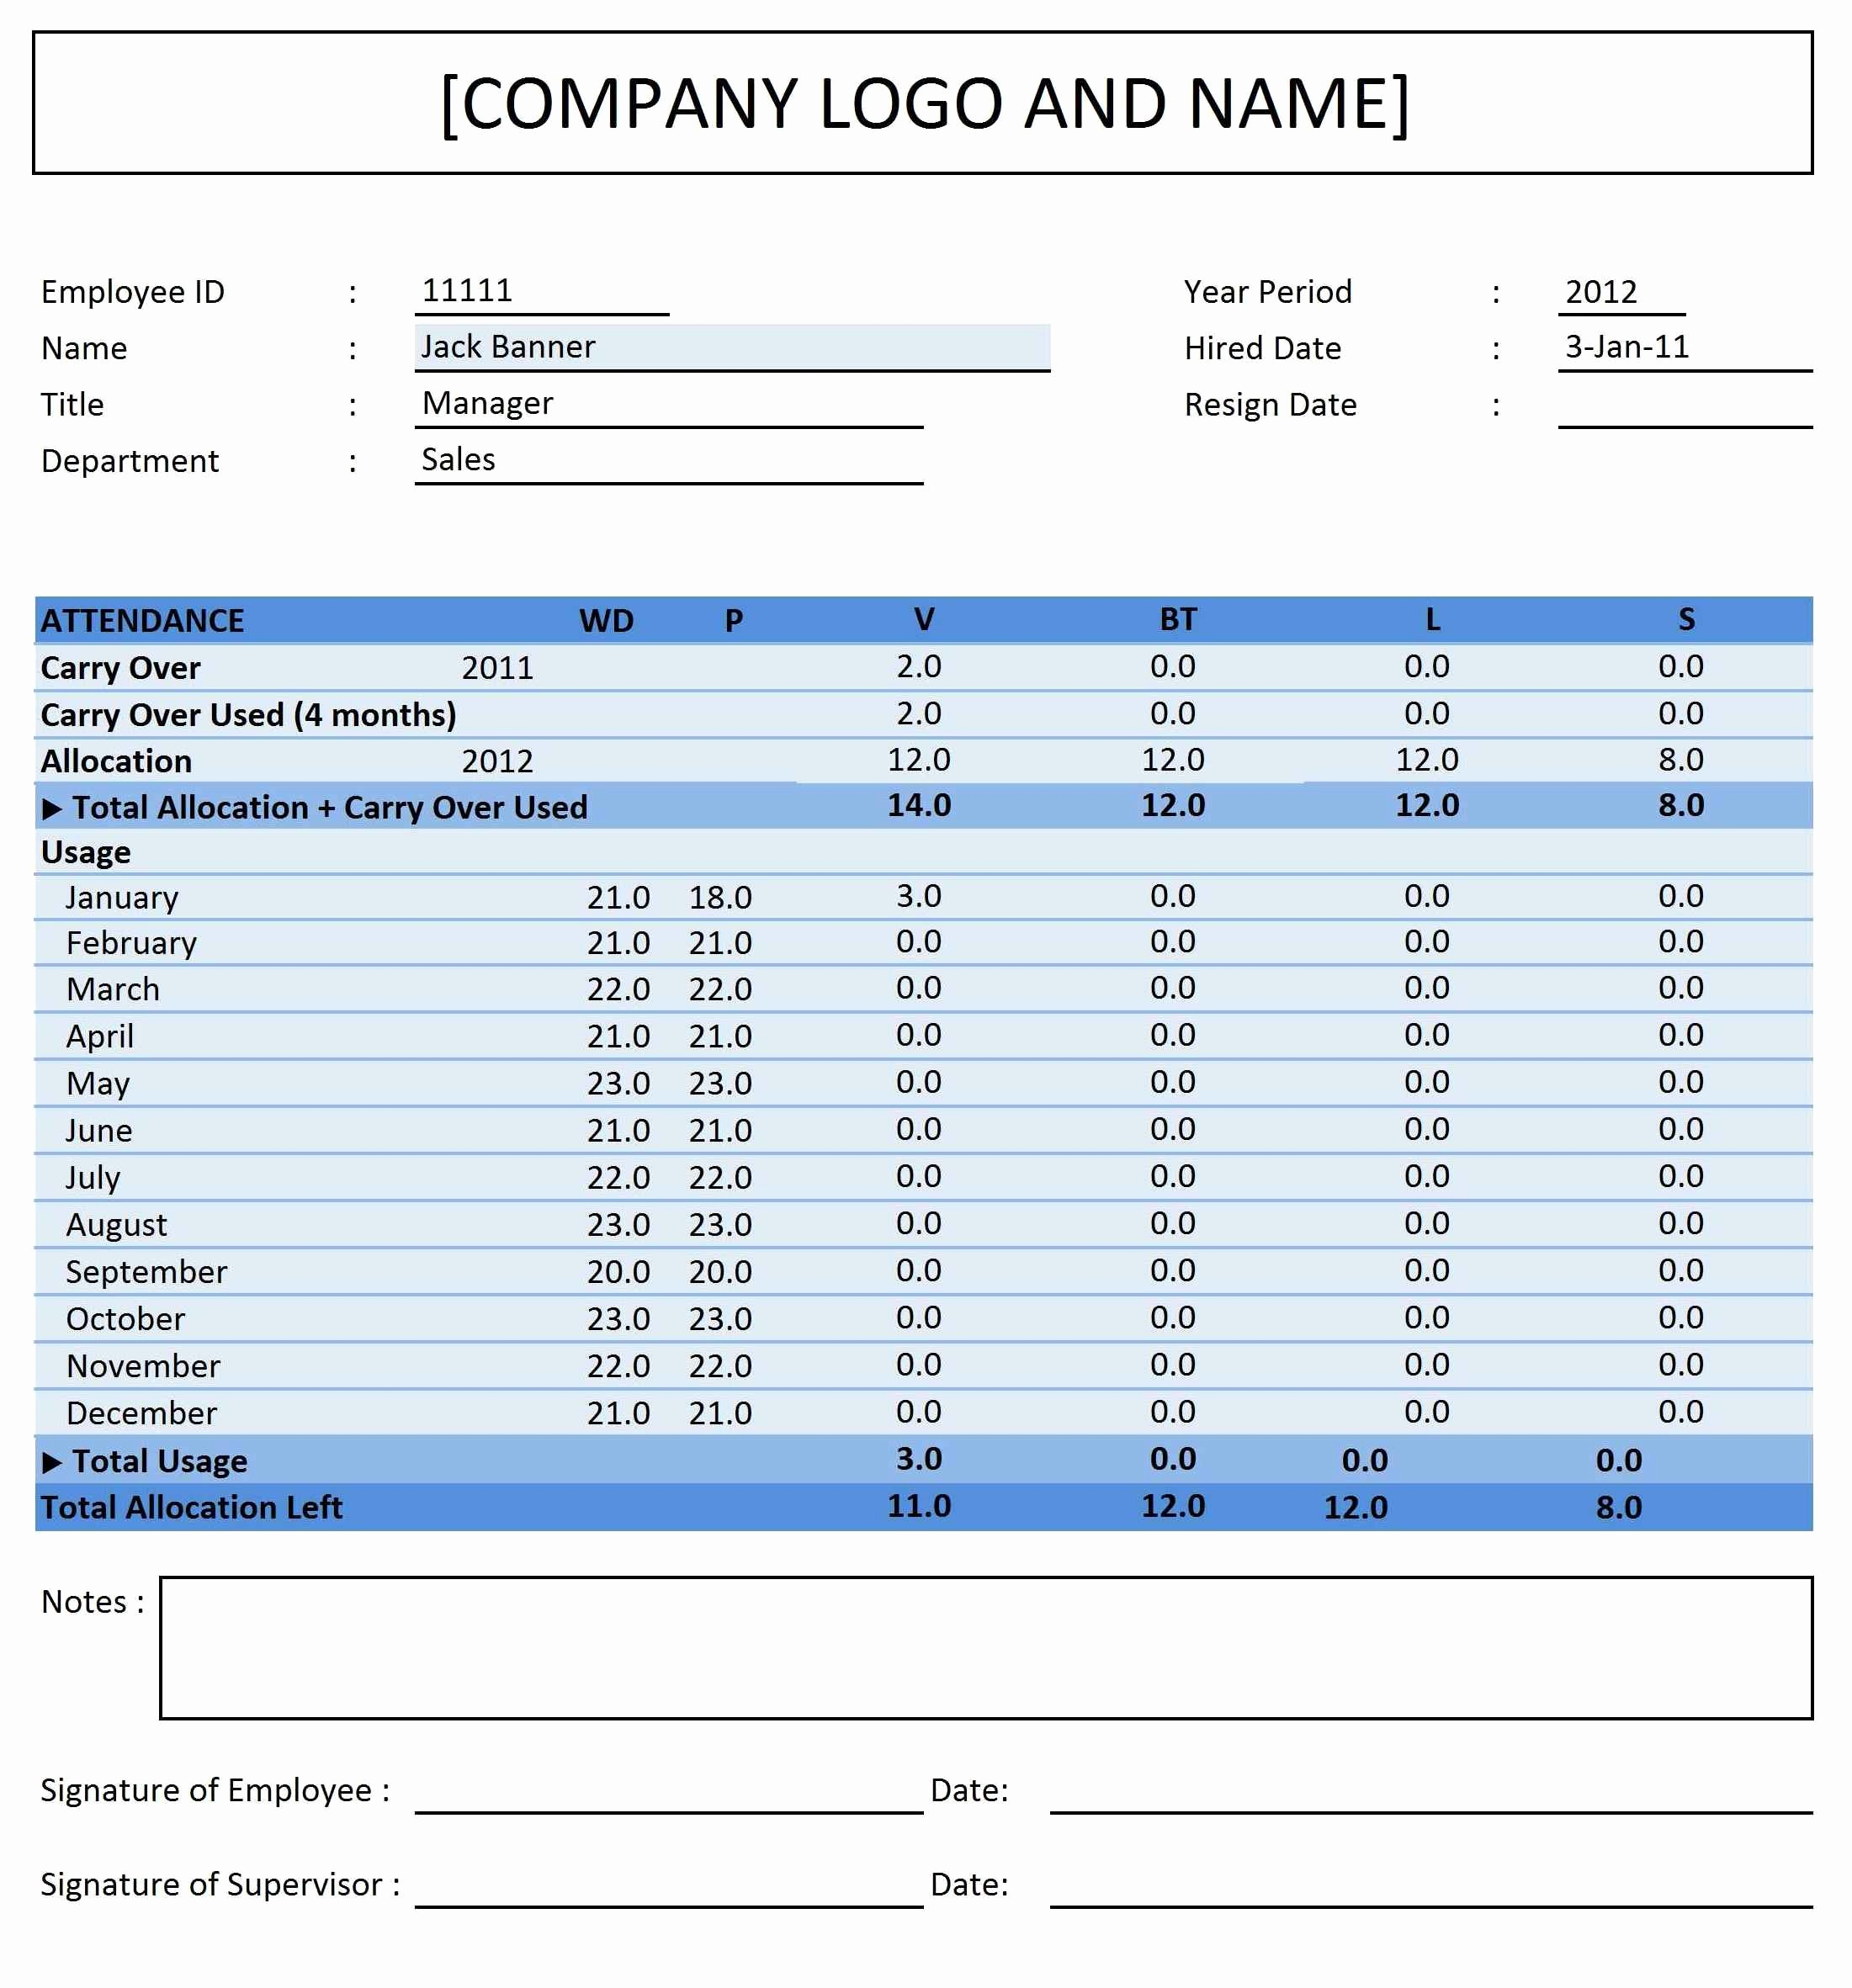 customer order tracking spreadsheet spreadsheet downloa customer order tracking spreadsheet